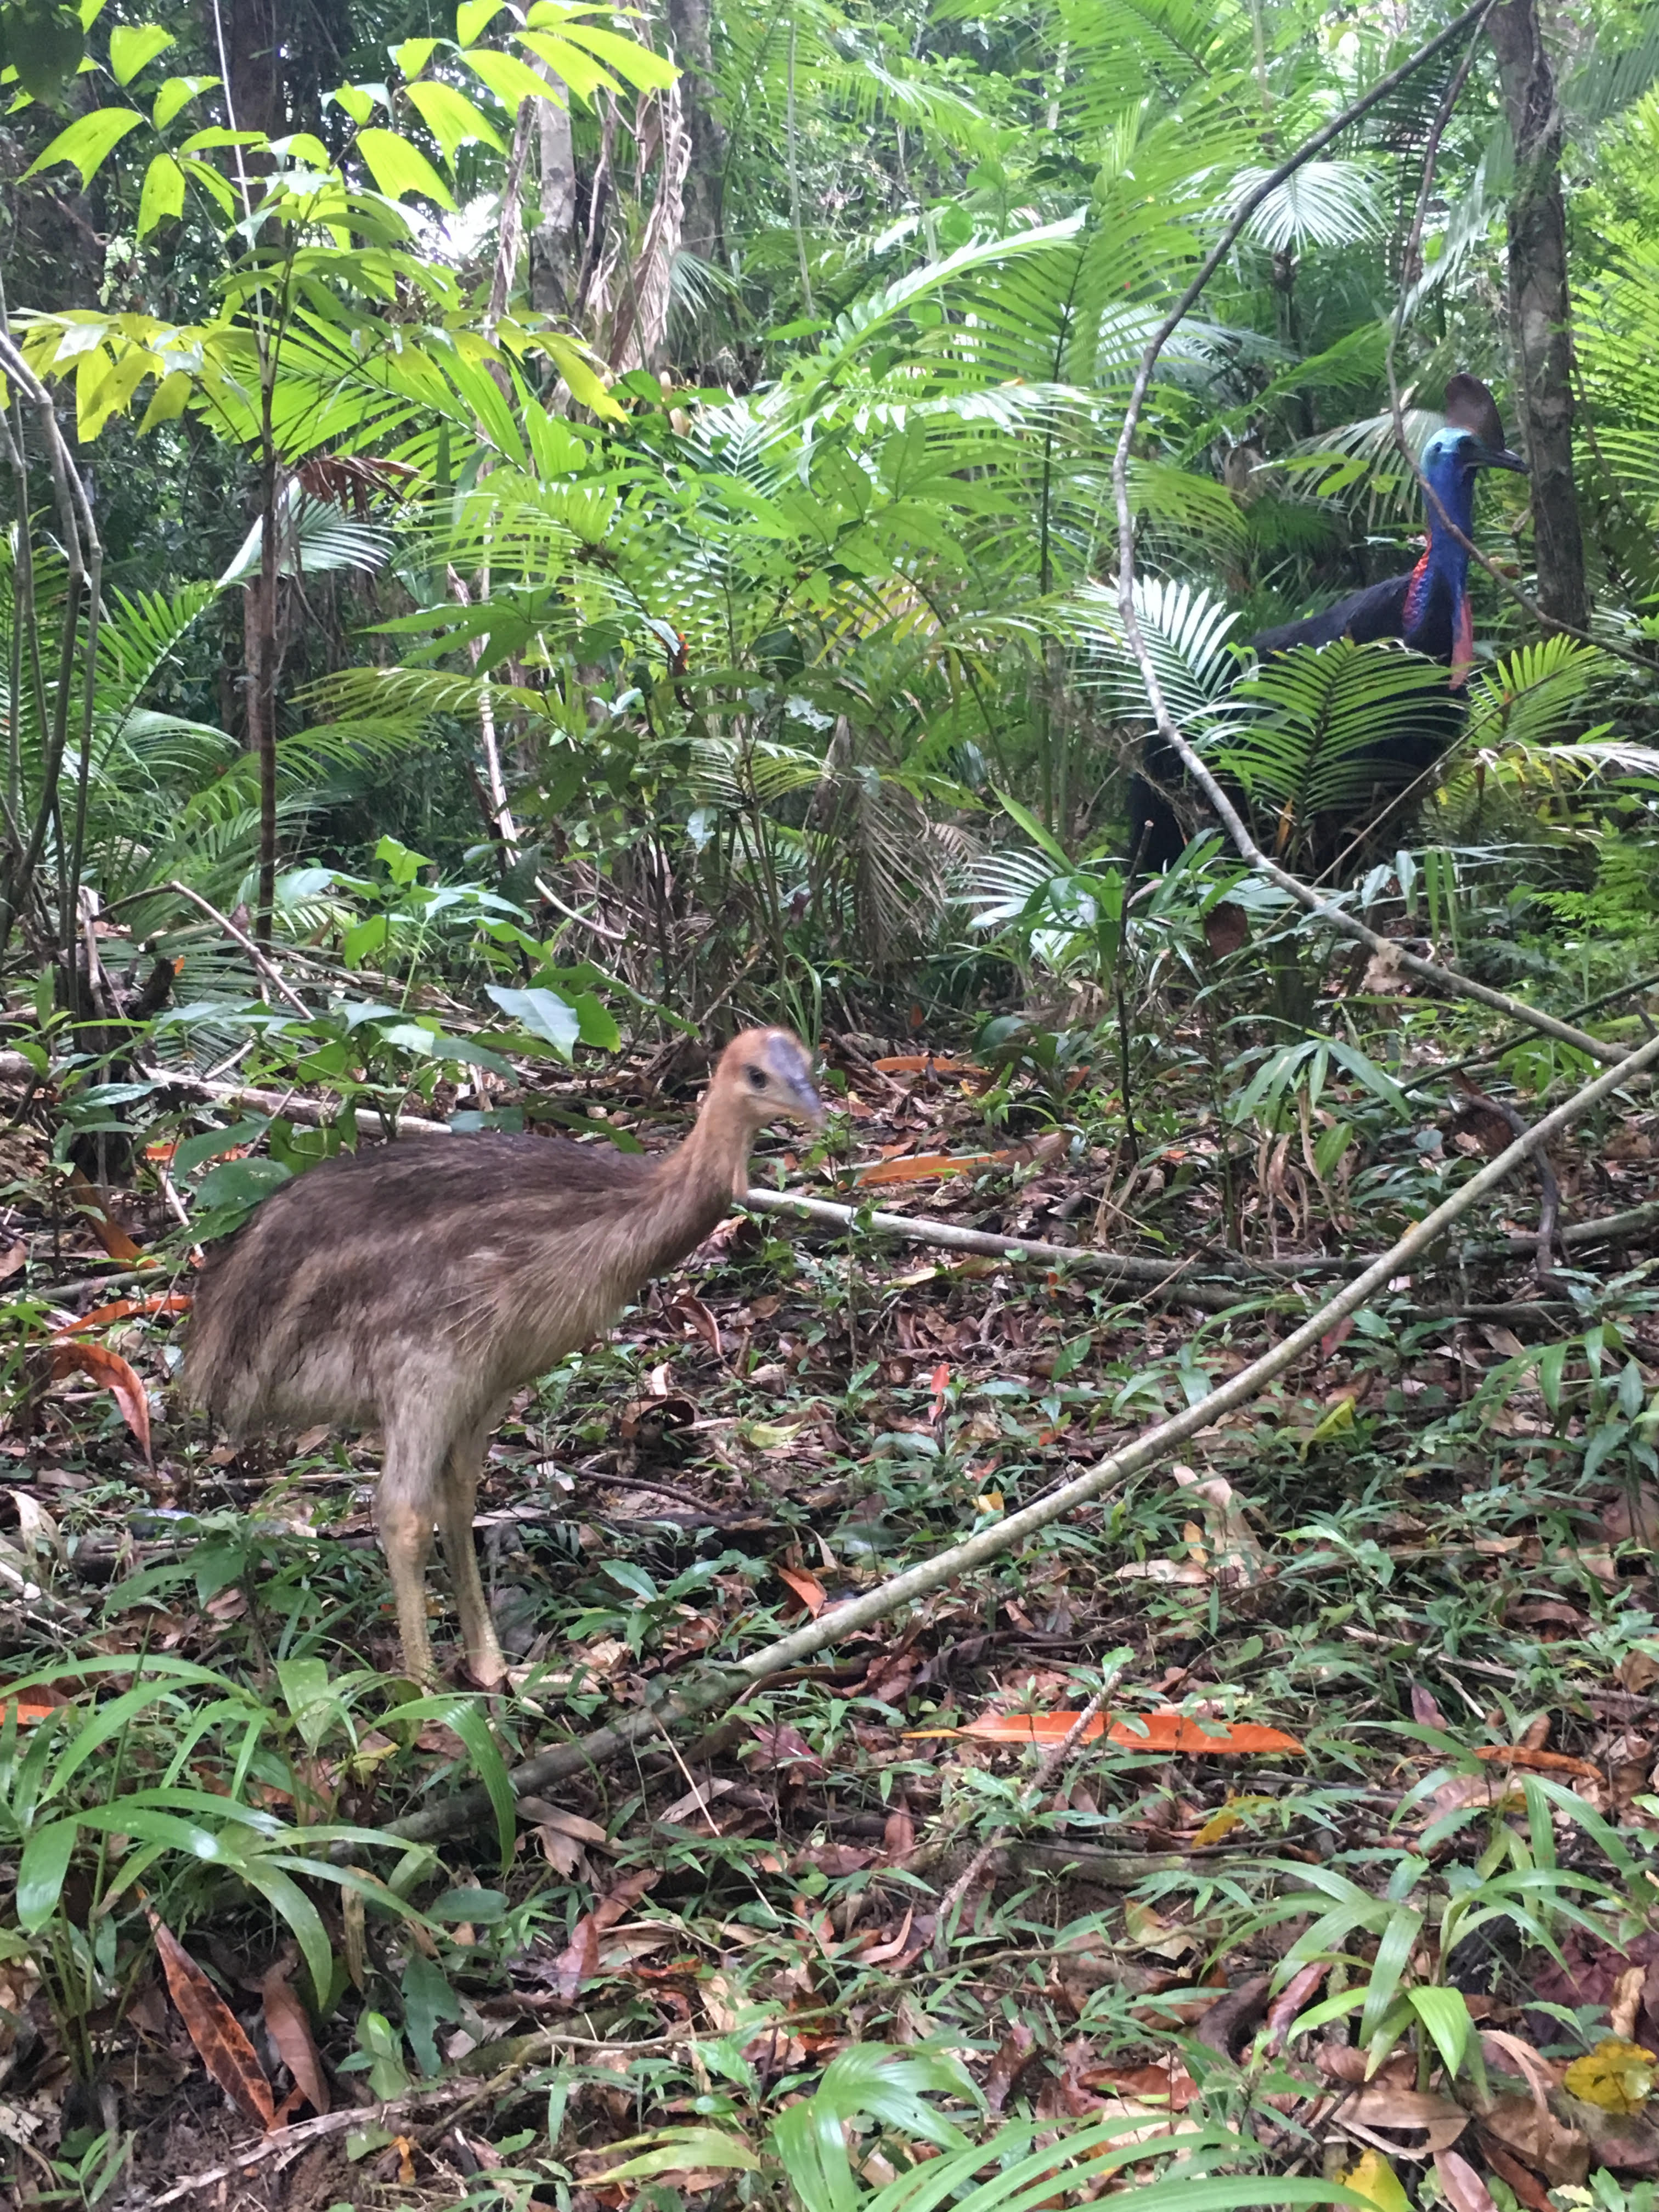 Cassowary and chick in the Daintree Rainforest